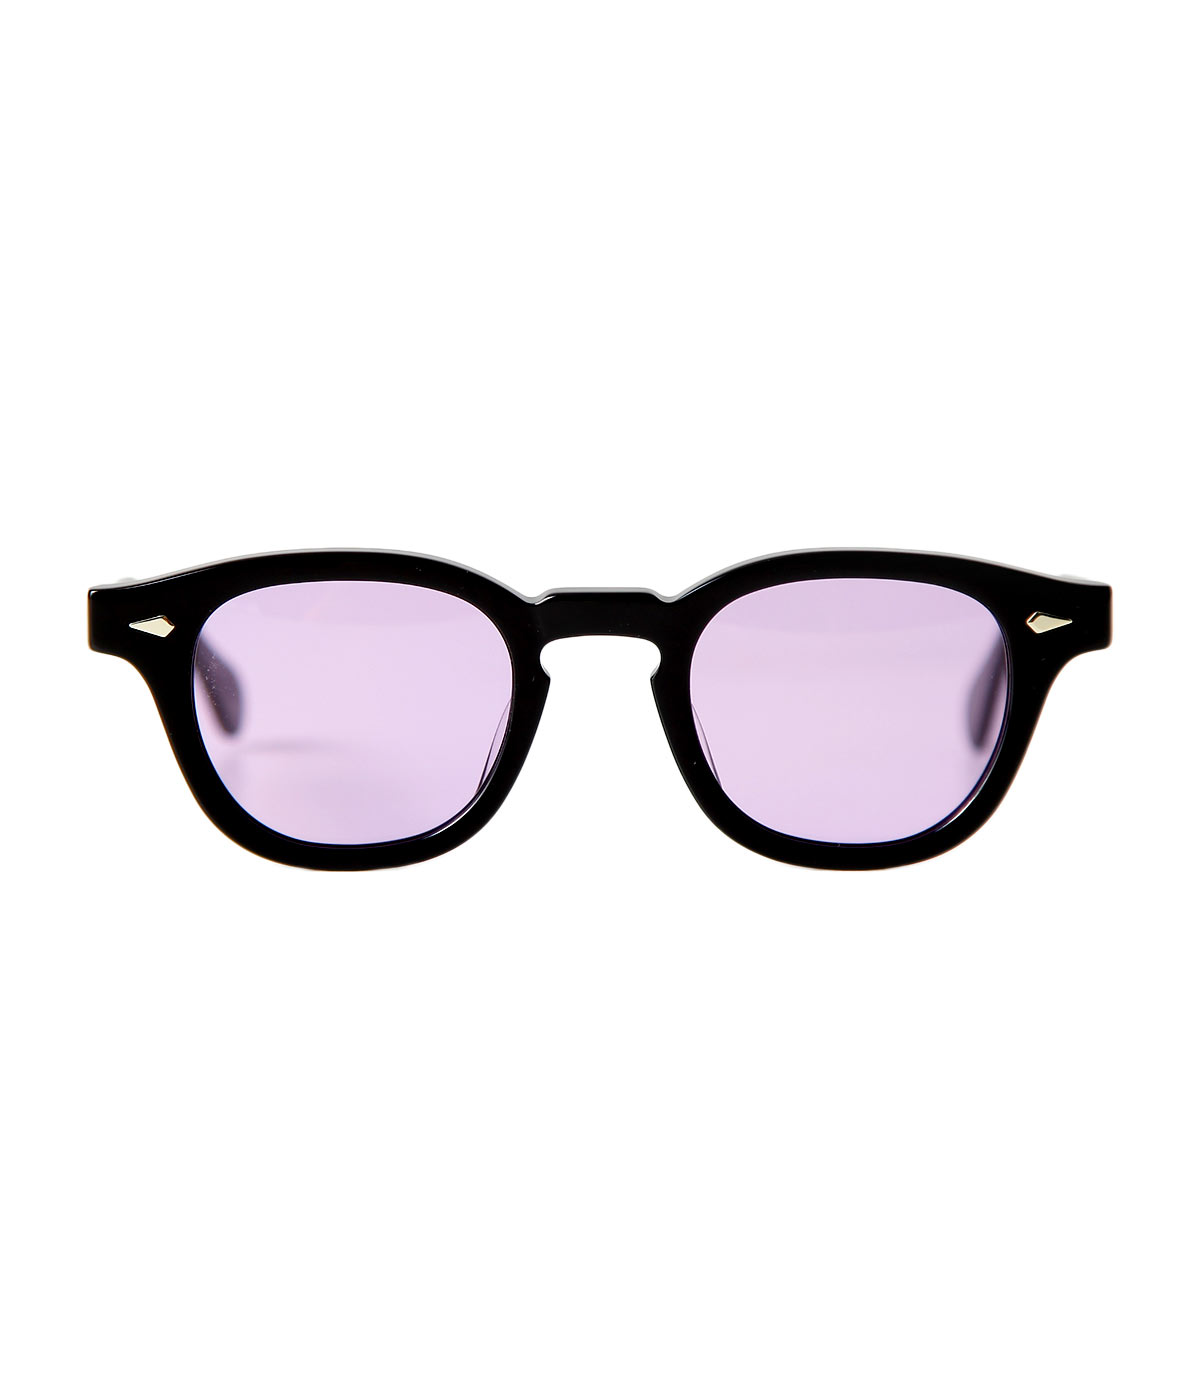 AR 46-24 -BLACK / PURPLE-